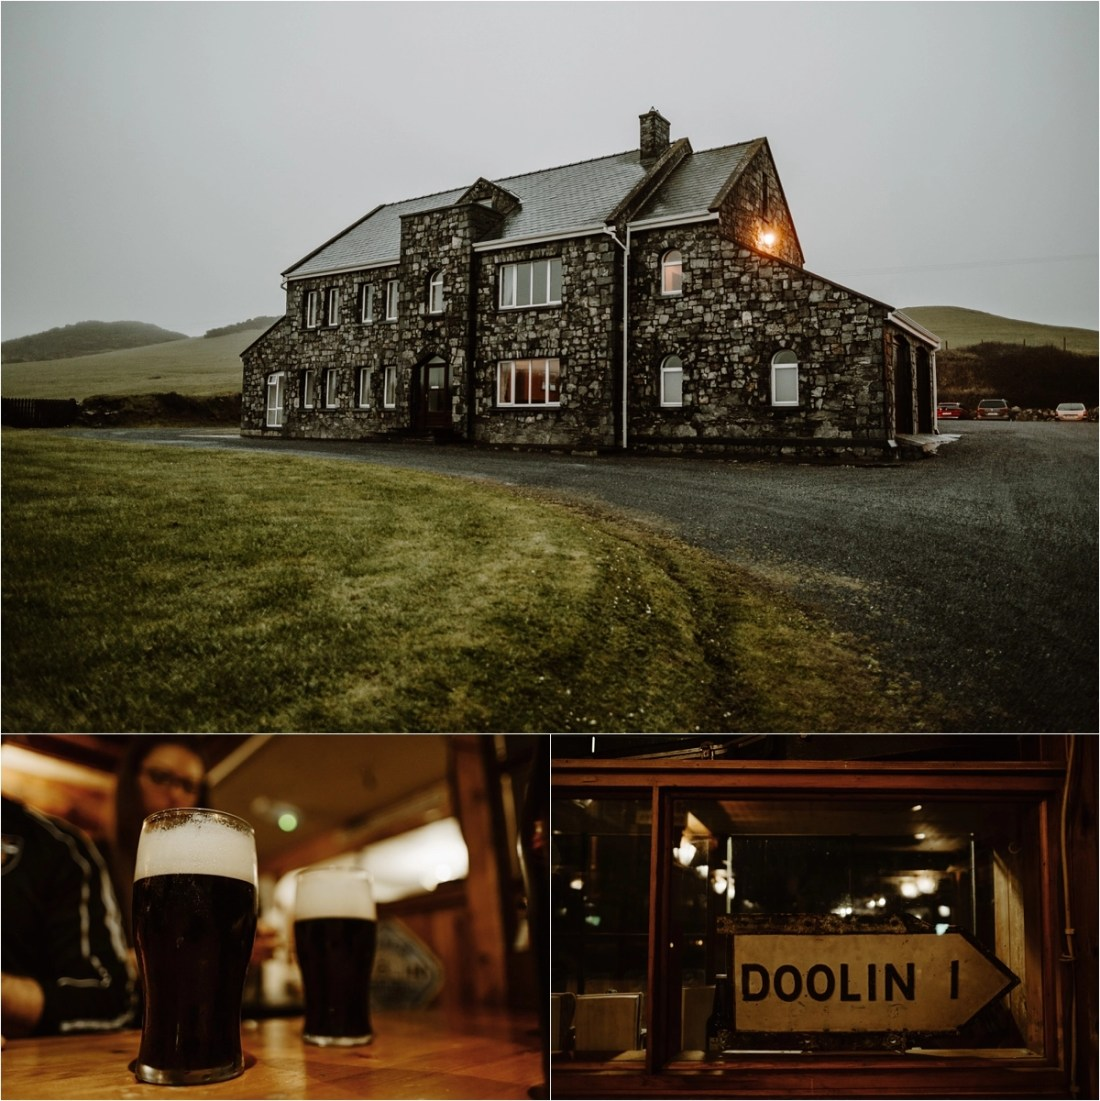 Pre-Wedding drinks in Doolon Ireland. Photos by Europe Elopement Photographer Wild Connections Photography